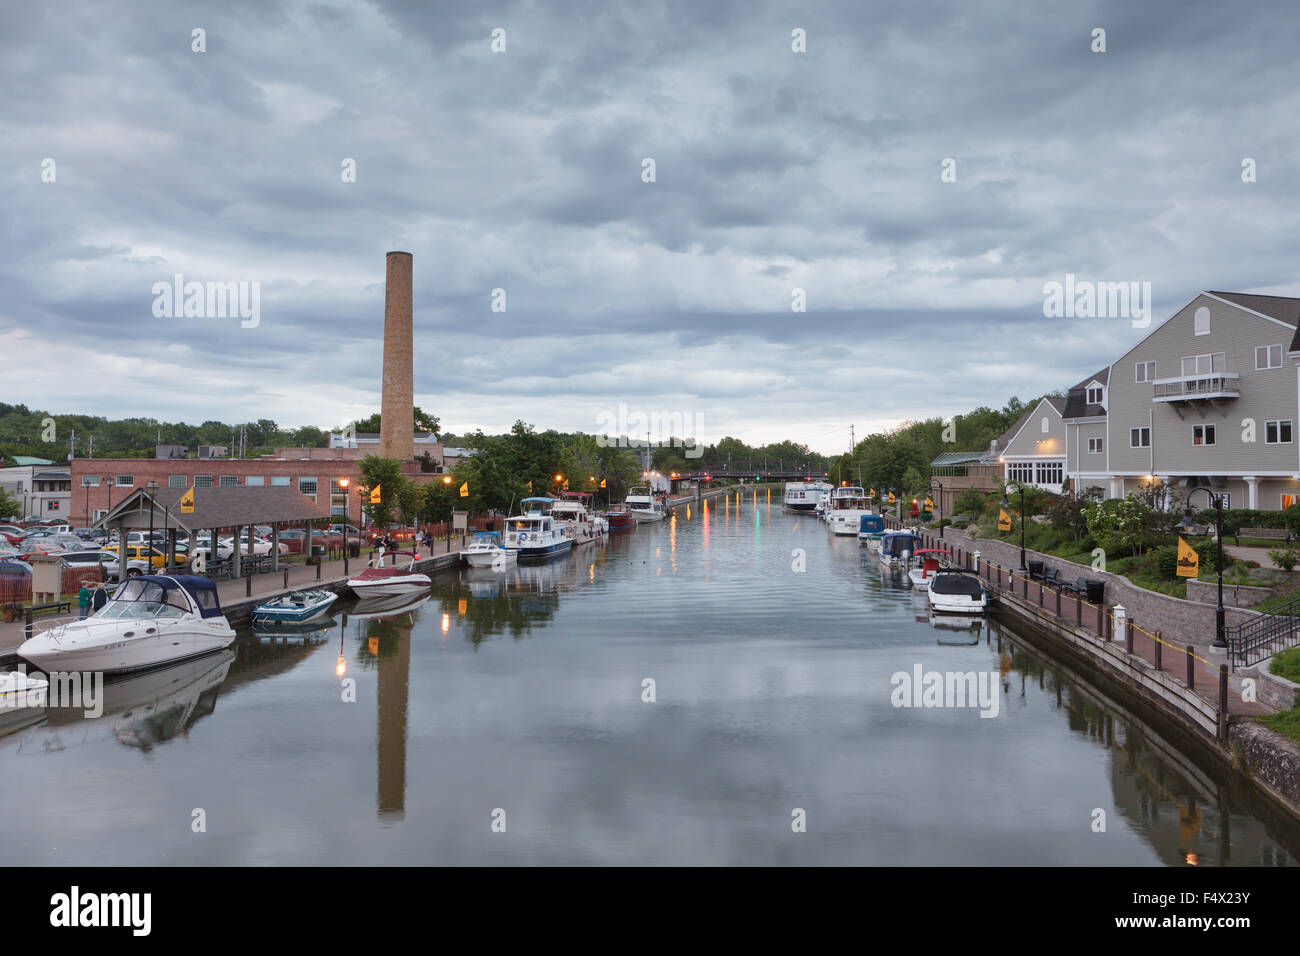 Erie Canal, Fairport, Monroe County, New York State, USA - Stock Image